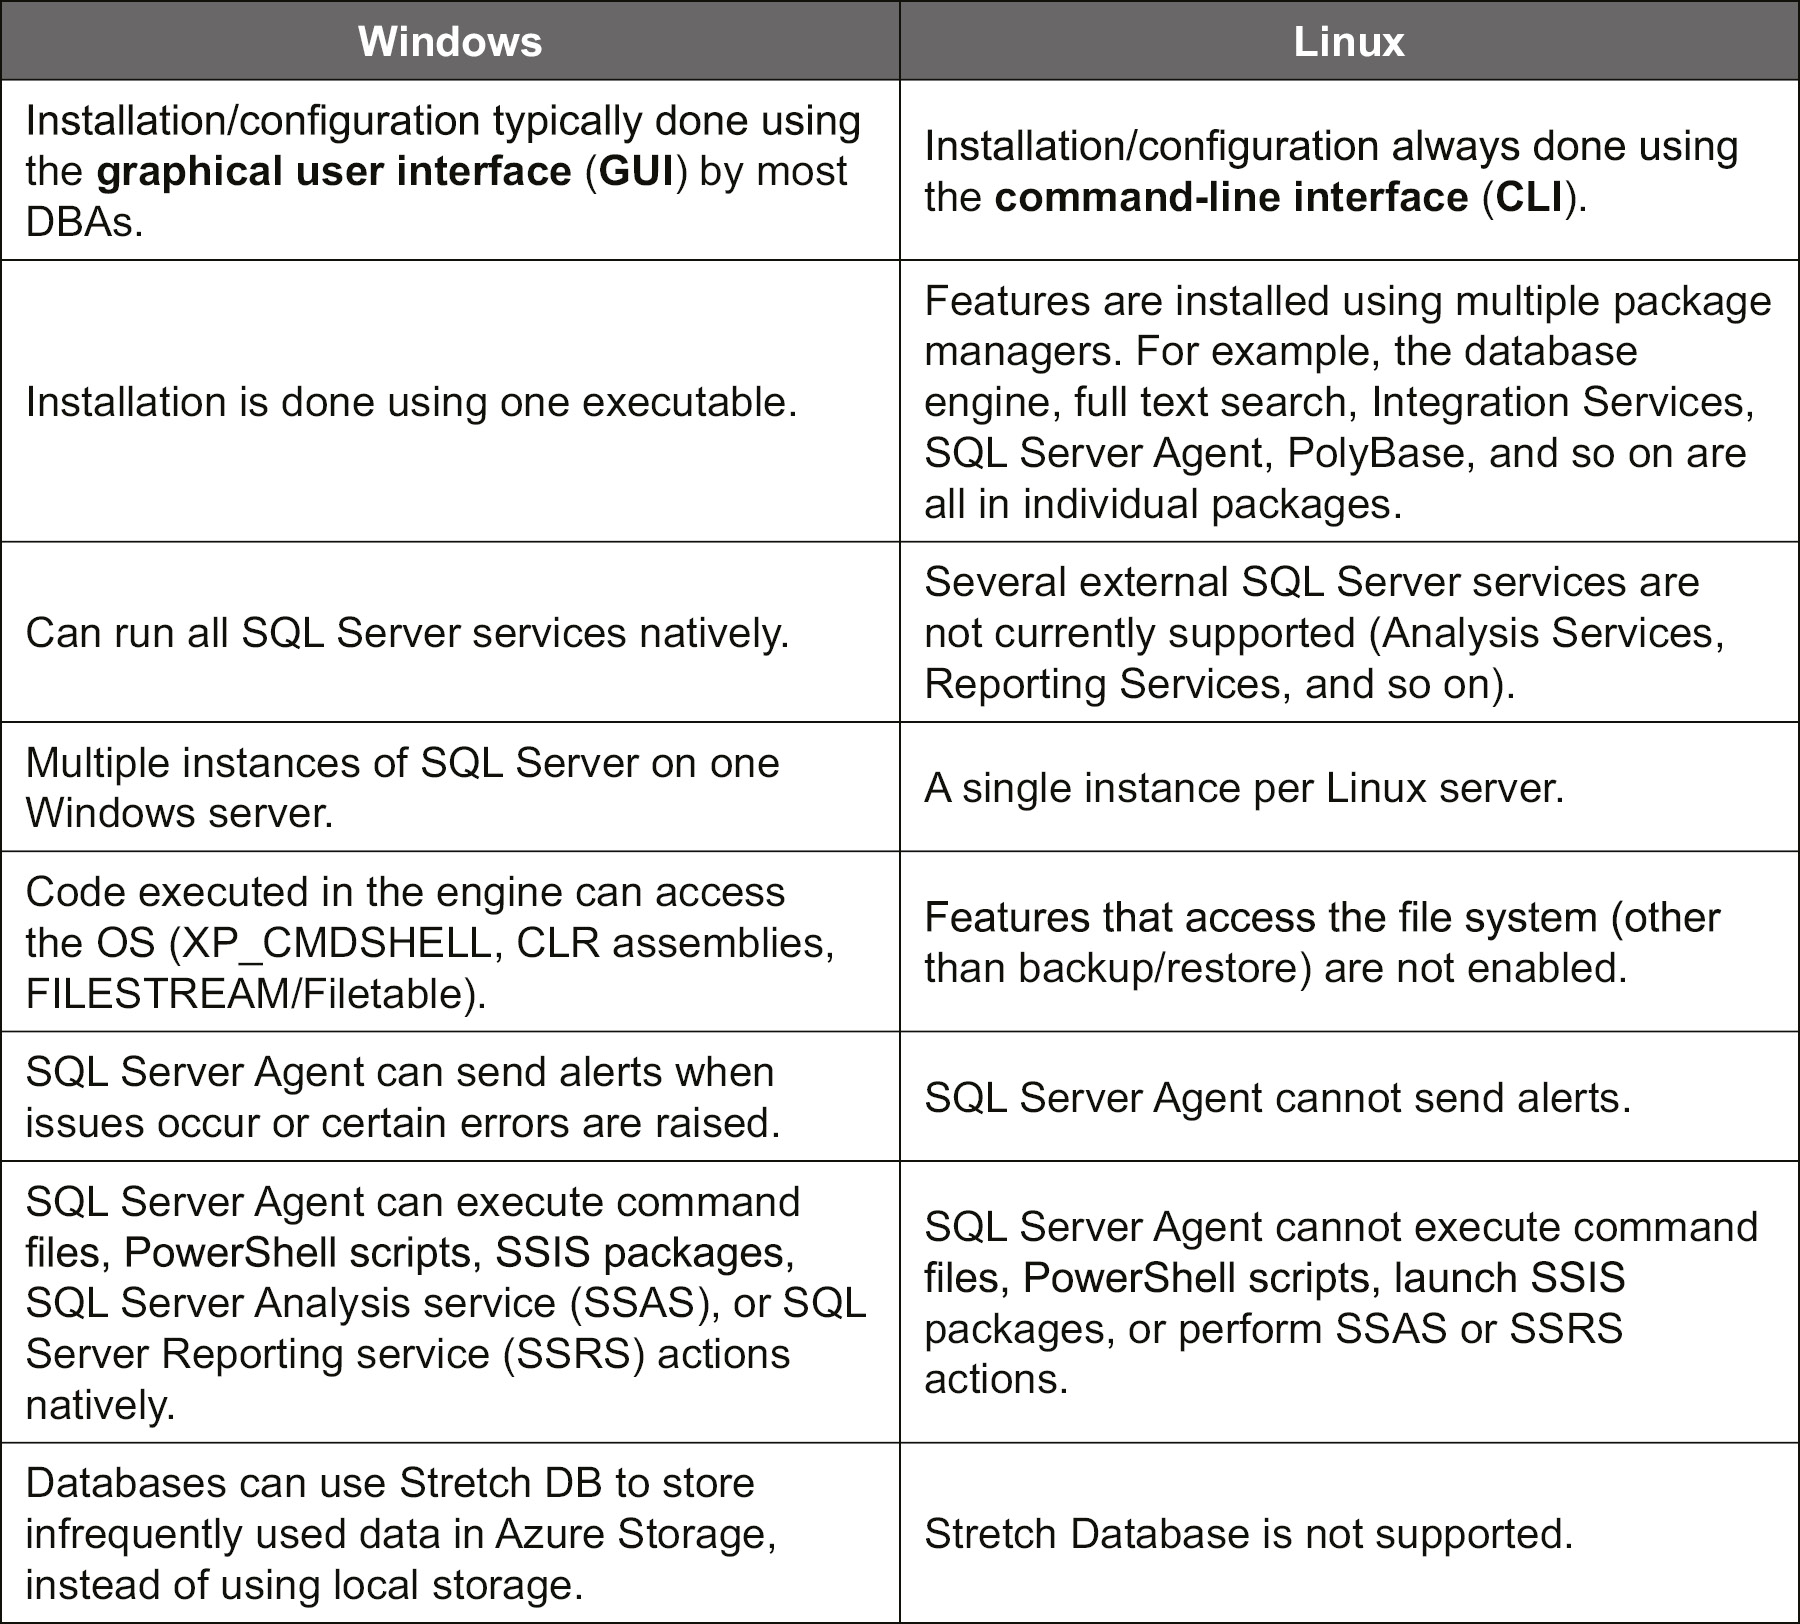 Key differences between SQL Server on Linux and Windows